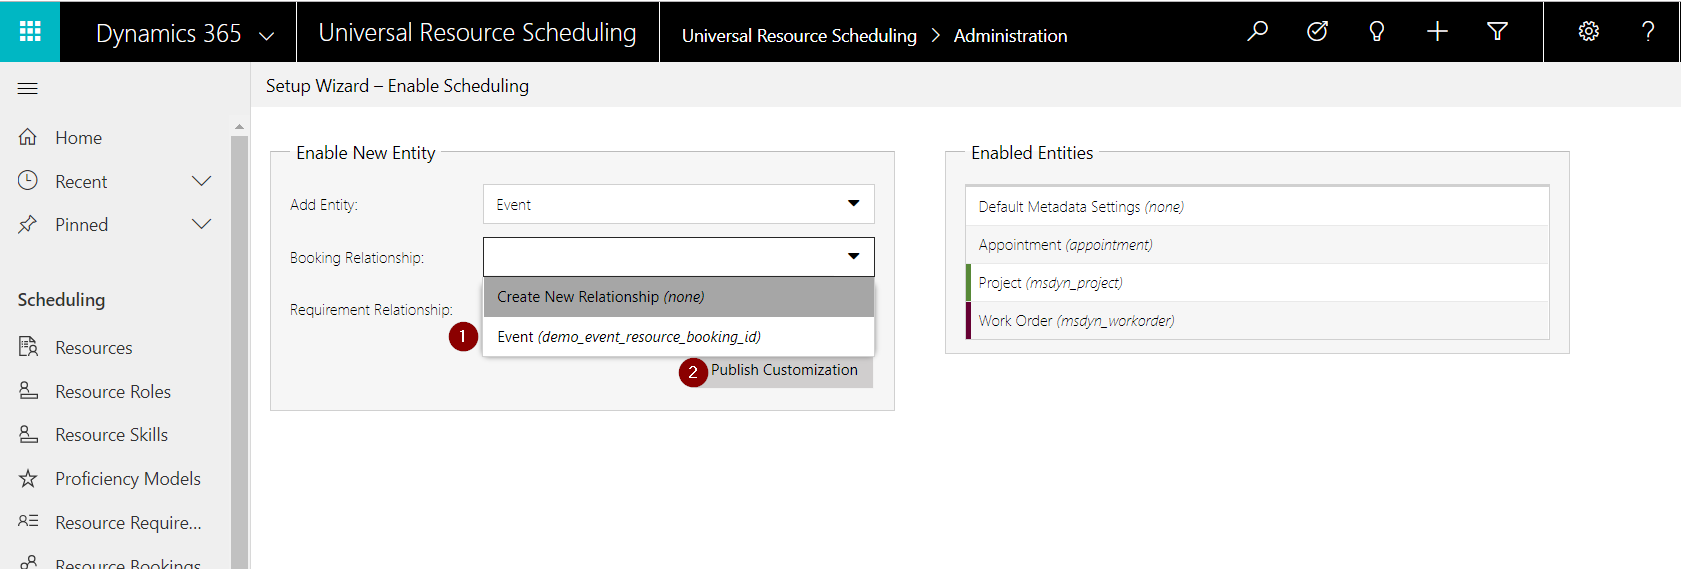 Get started with Universal Resource Scheduling | Sara Lagerquist